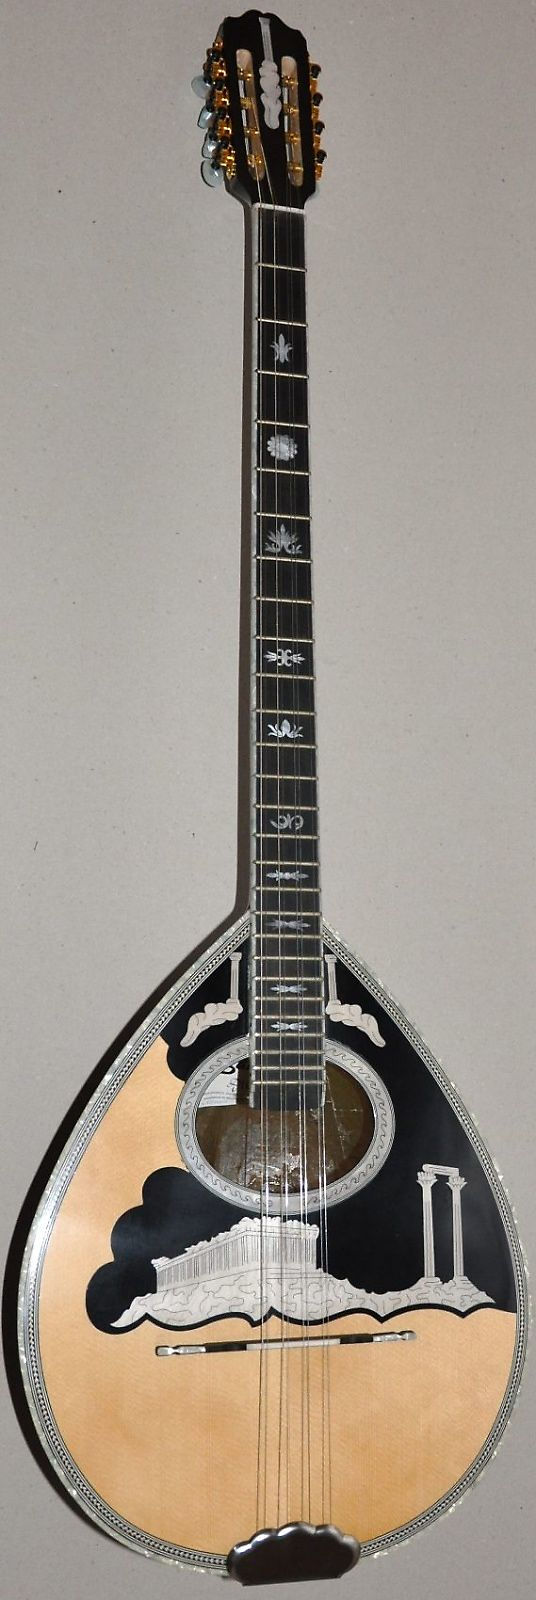 Matsikas 8-String Greek Bouzouki w/ Soft Case - Parthenon